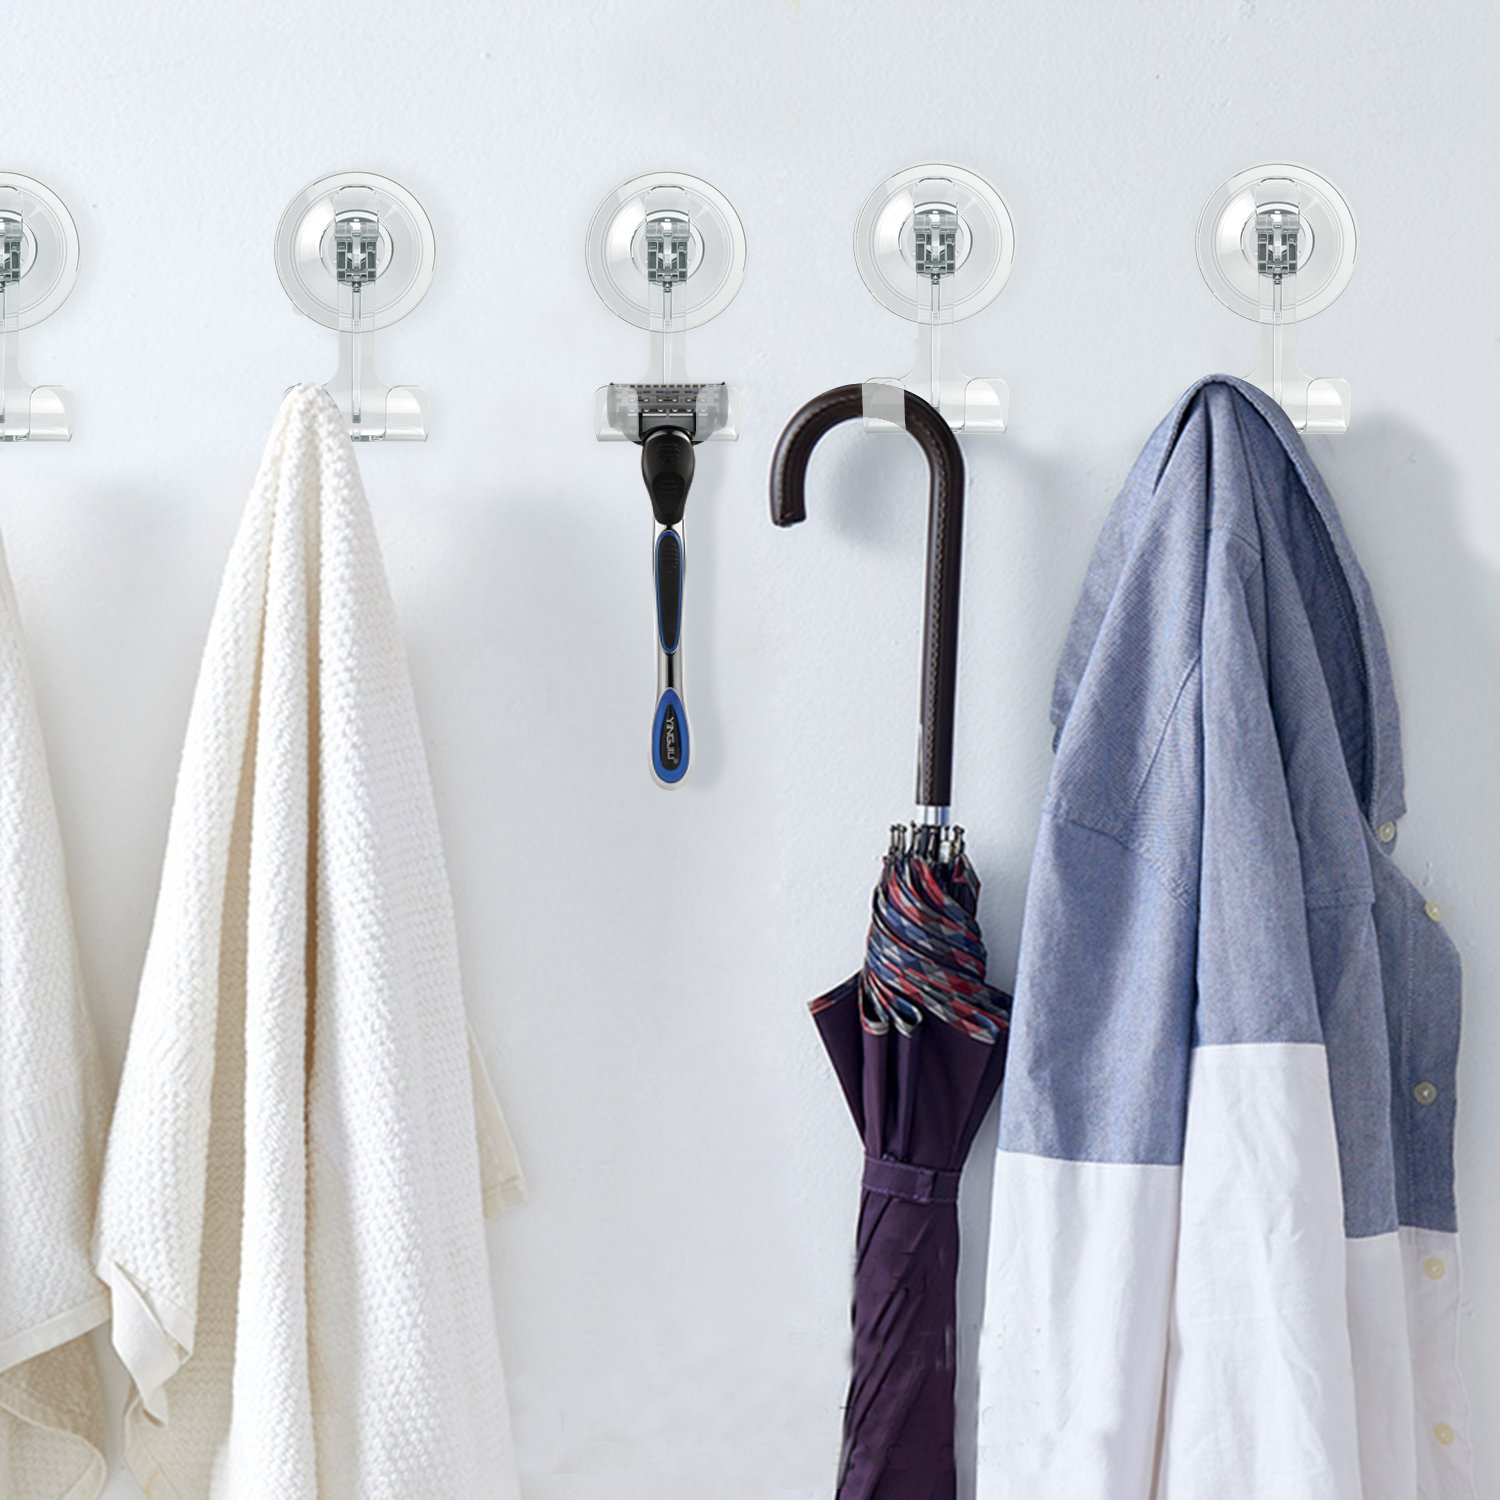 Suction Hooks, Nikolable Suction Power Hooks Heavy Duty Wreath Hanger Suction Cup Hook for Bathroom Kitchen Living Room to Hang on Towels Razor Bag etc. 40 Hooks Hanger by Nikolable (Image #7)